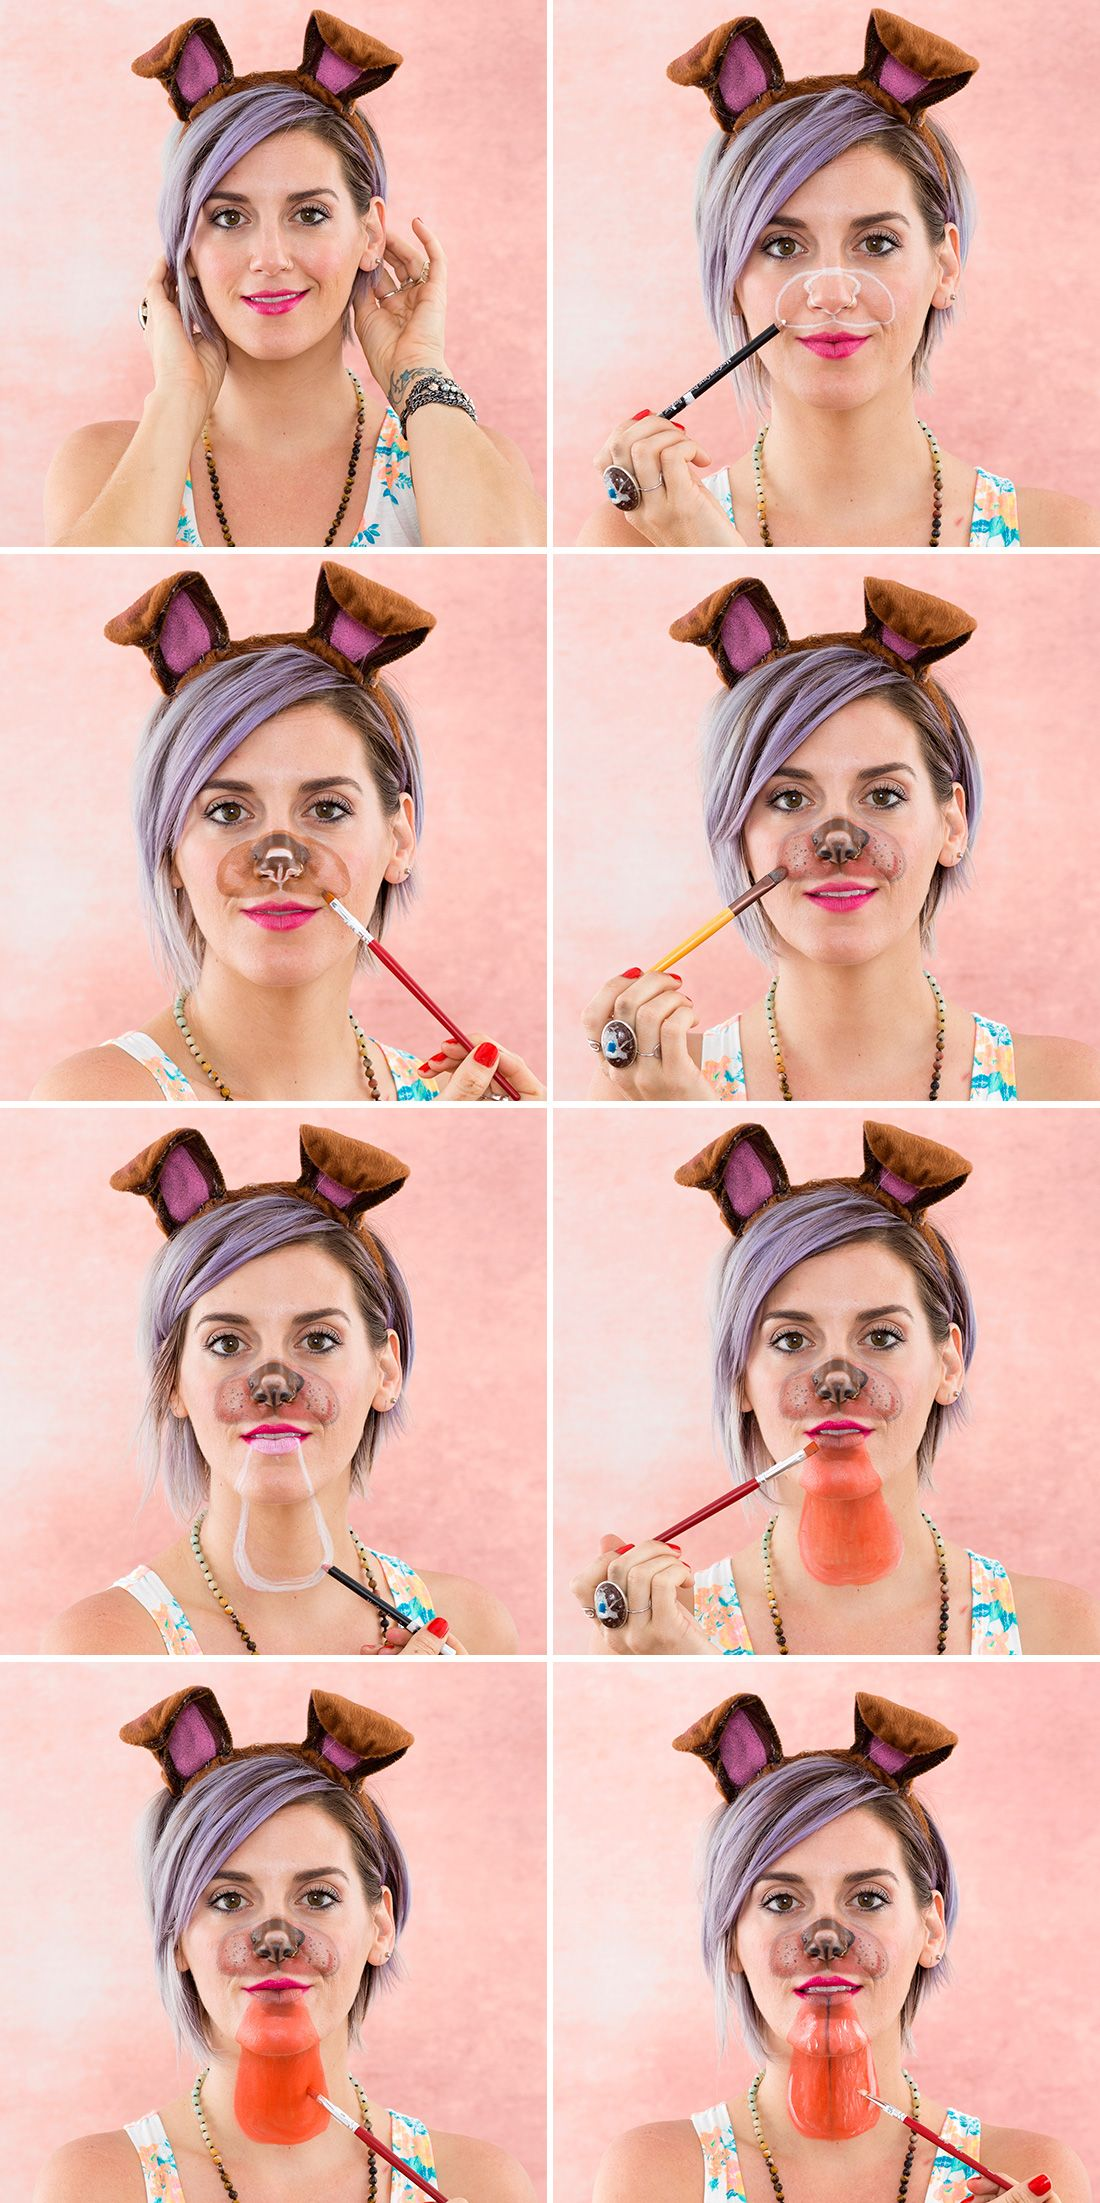 Bring Snapchat Filters to Life With These Halloween Makeup Hacks